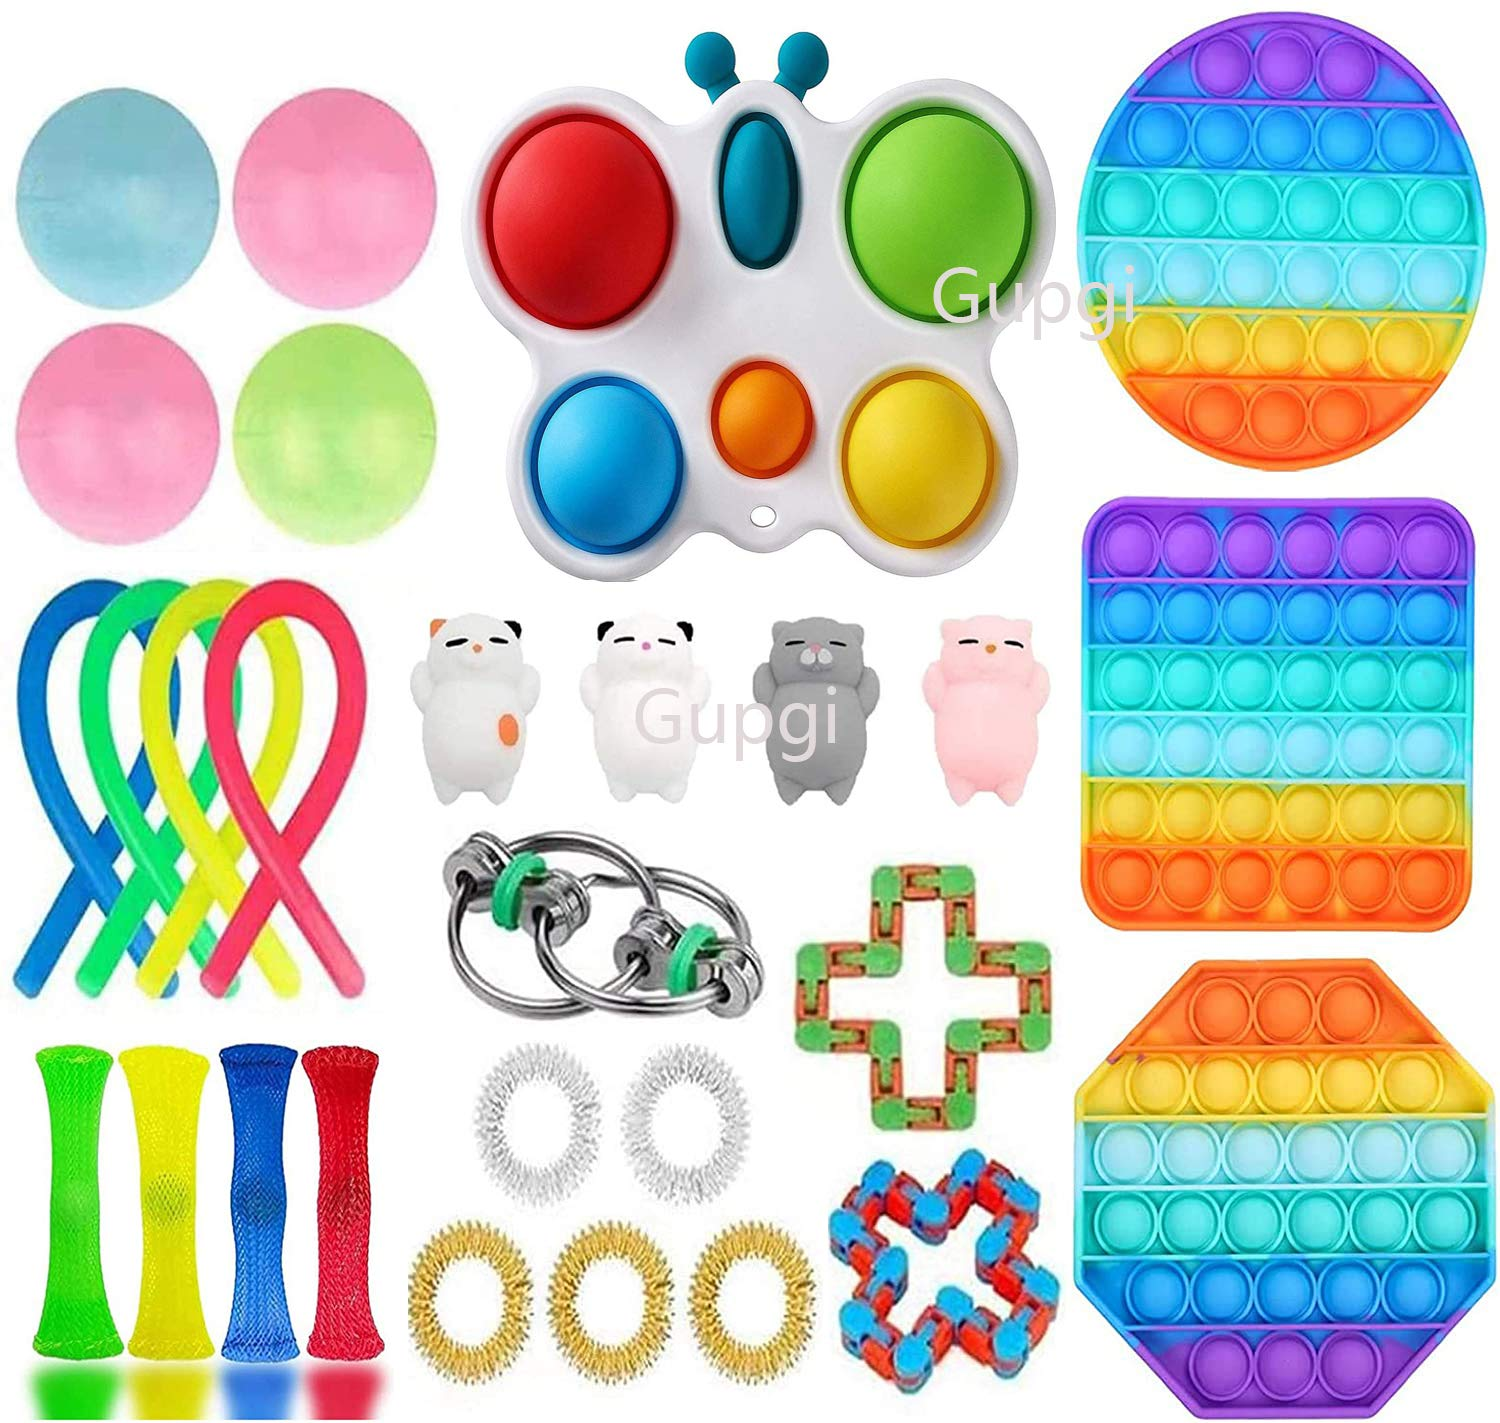 Fidget Toy Set 25 Packs, Cheap Sensory Fidget Toys Pack for Kids or Adults, Figetgets-Toys Pack Figit Toys with Simples-Dimples Fidget Toy, Anxiety Relief Toys Kill Time (Push Its Dimple Toy)